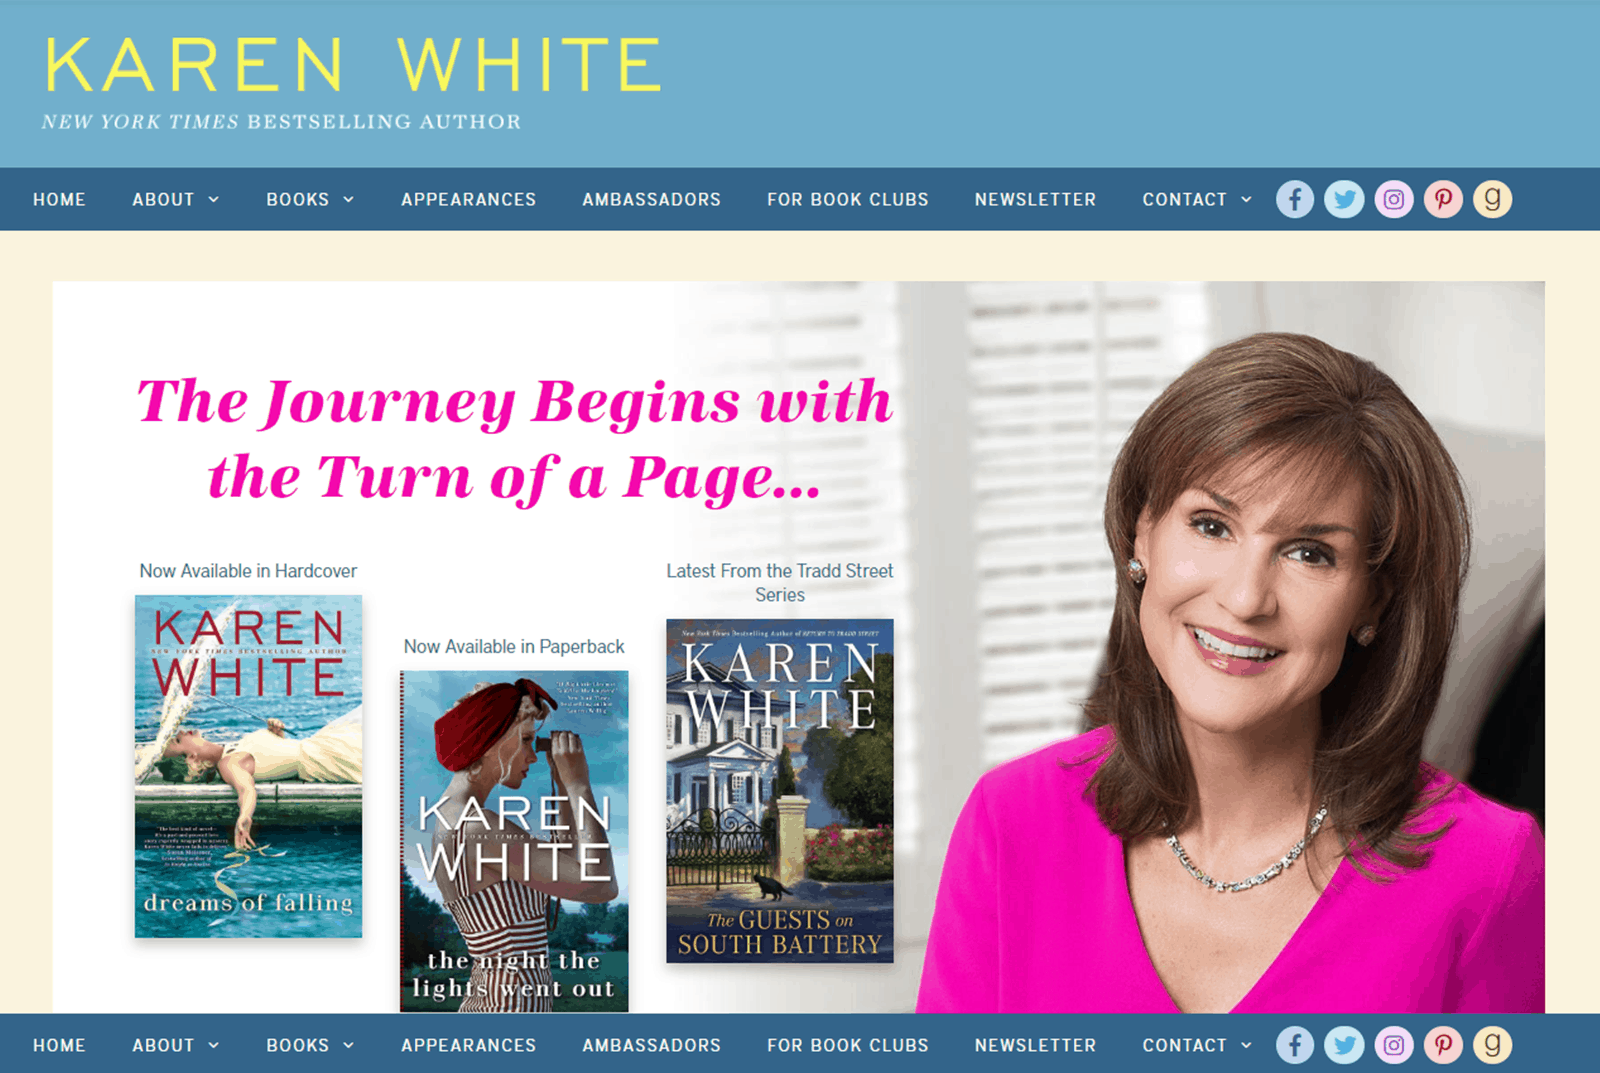 Karen White 2018 Website Update